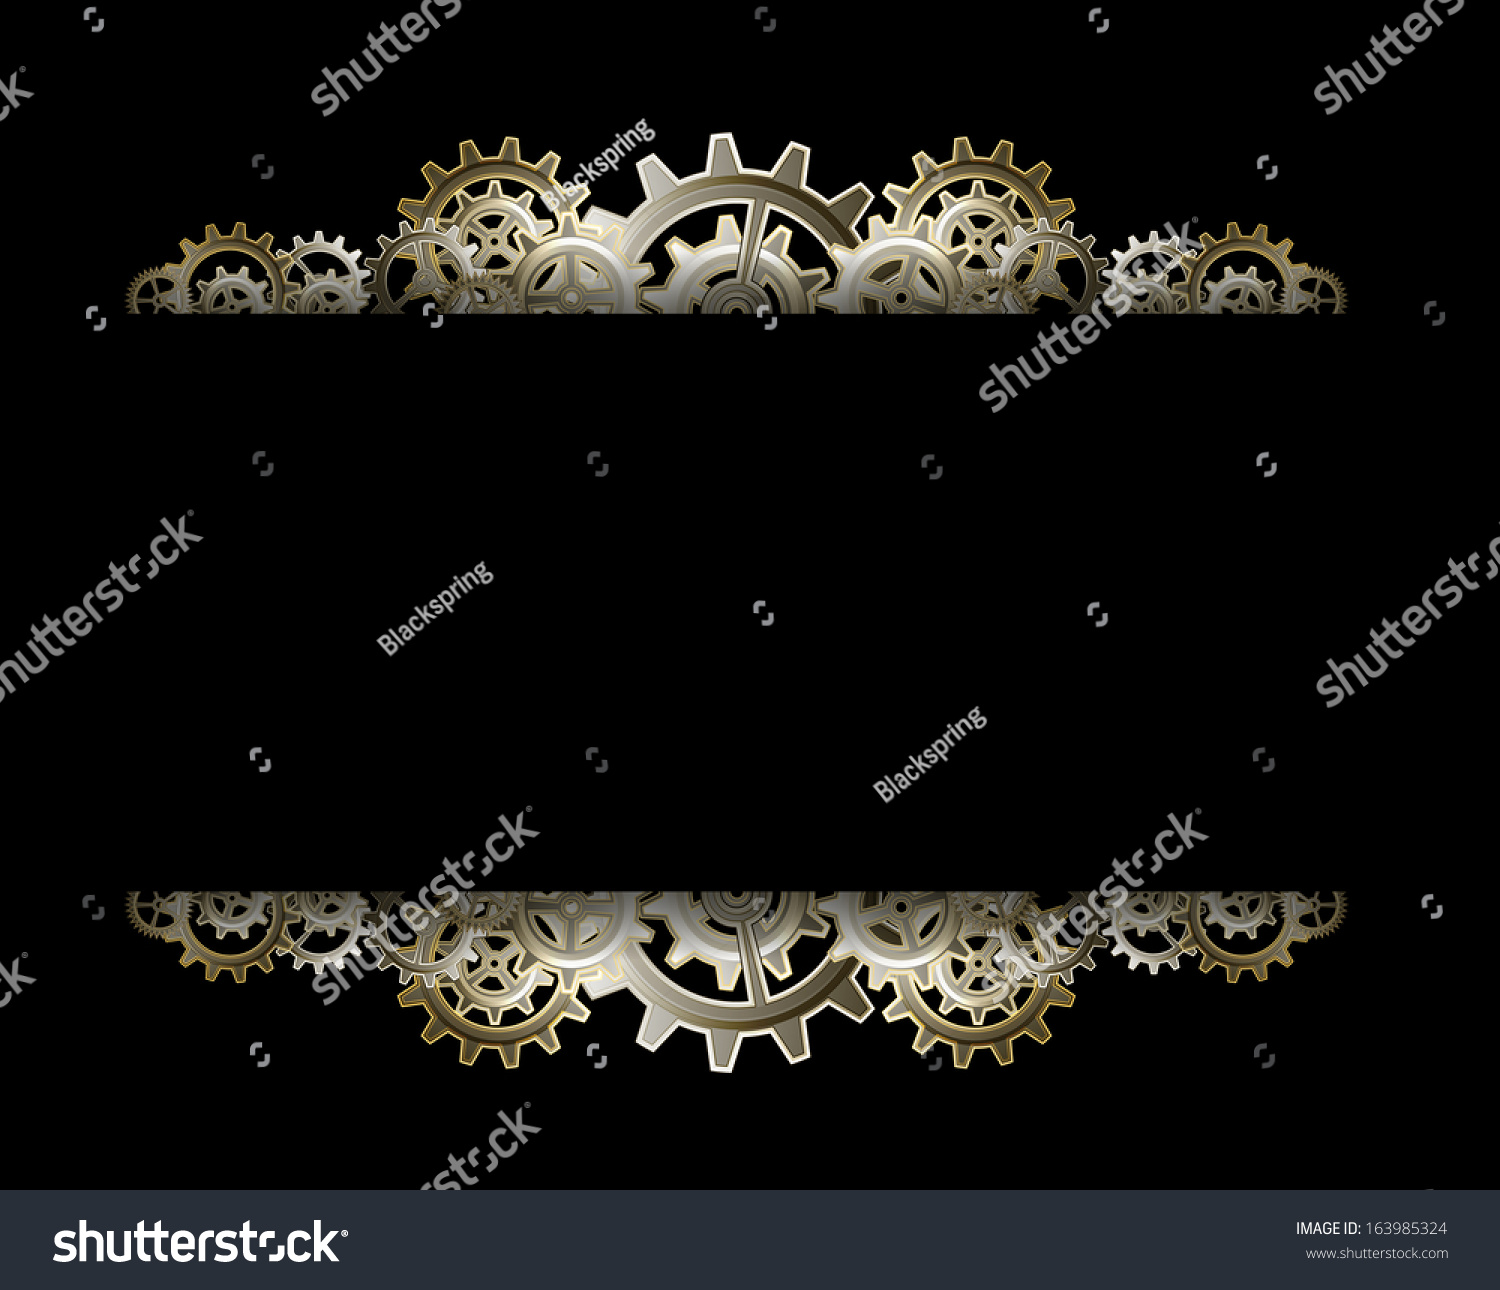 Steampunk Gears Frame Stock Vector Illustration 163985324 ...